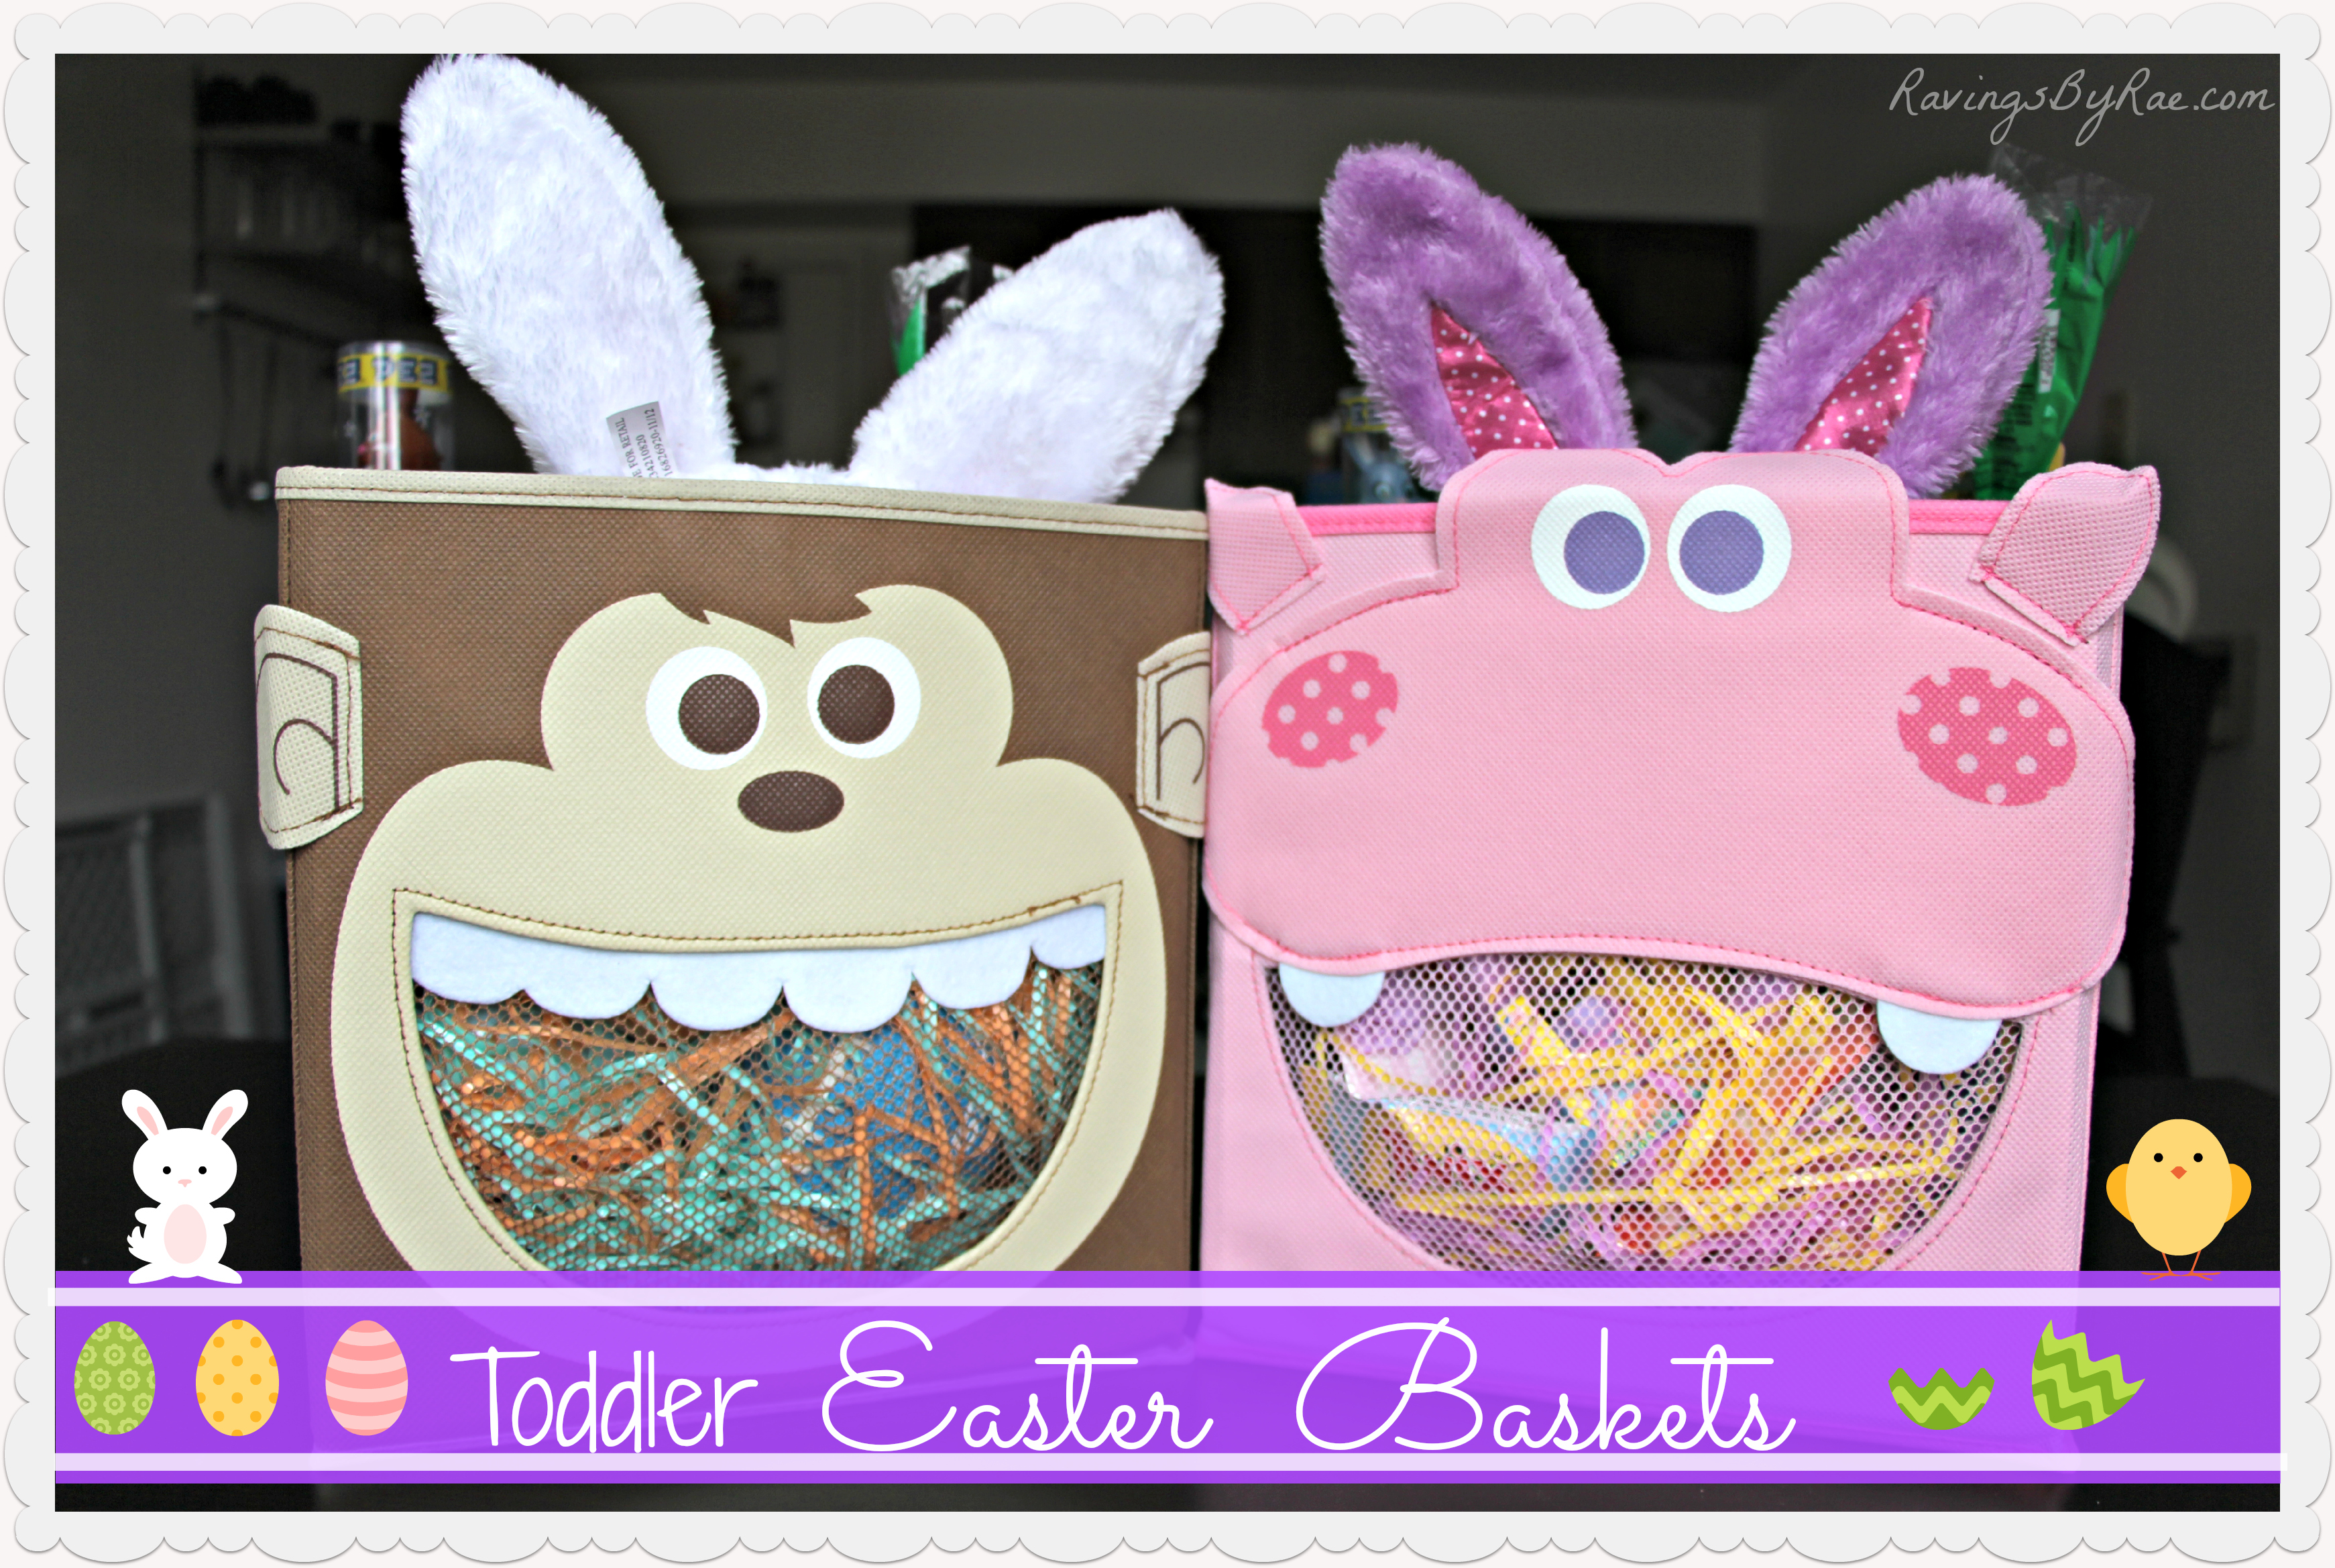 Toddler easter baskets non traditional sarah rae vargas toddler easter baskets 2 negle